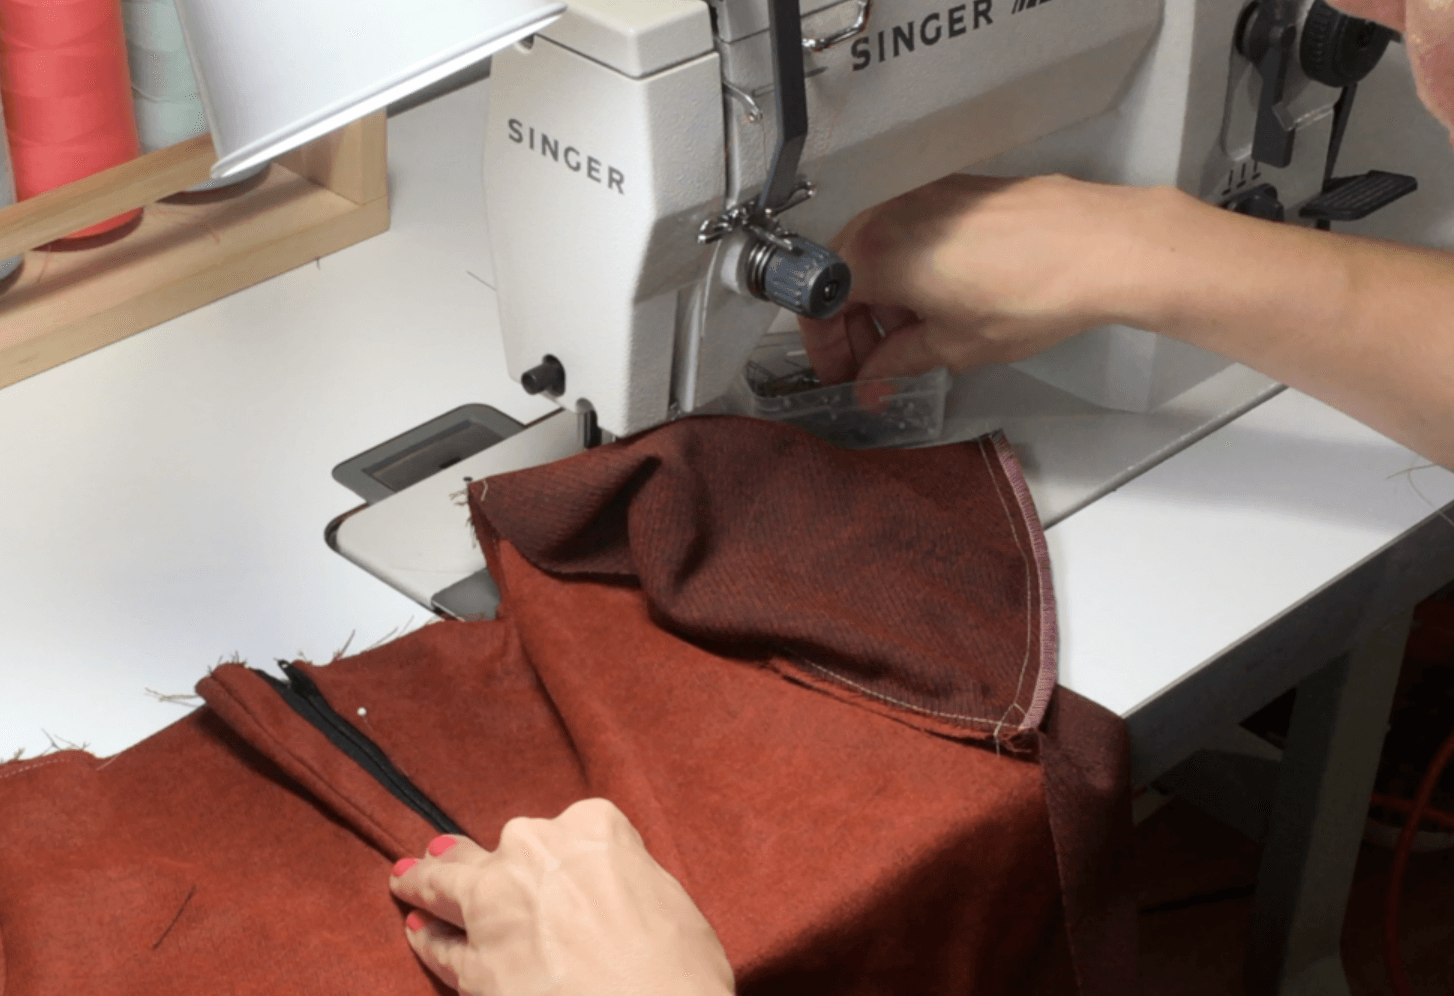 In this written and video tutorial, I will walk you step by step through the process of sewing a fly zipper in a fast and easy method. Click through to watch and learn!